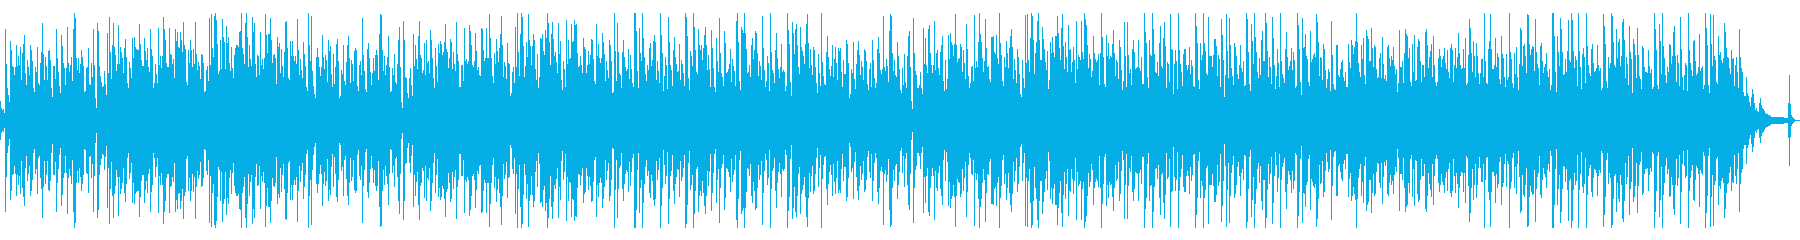 Fashionable Bossa Nova Relax Cafe's reproduced waveform